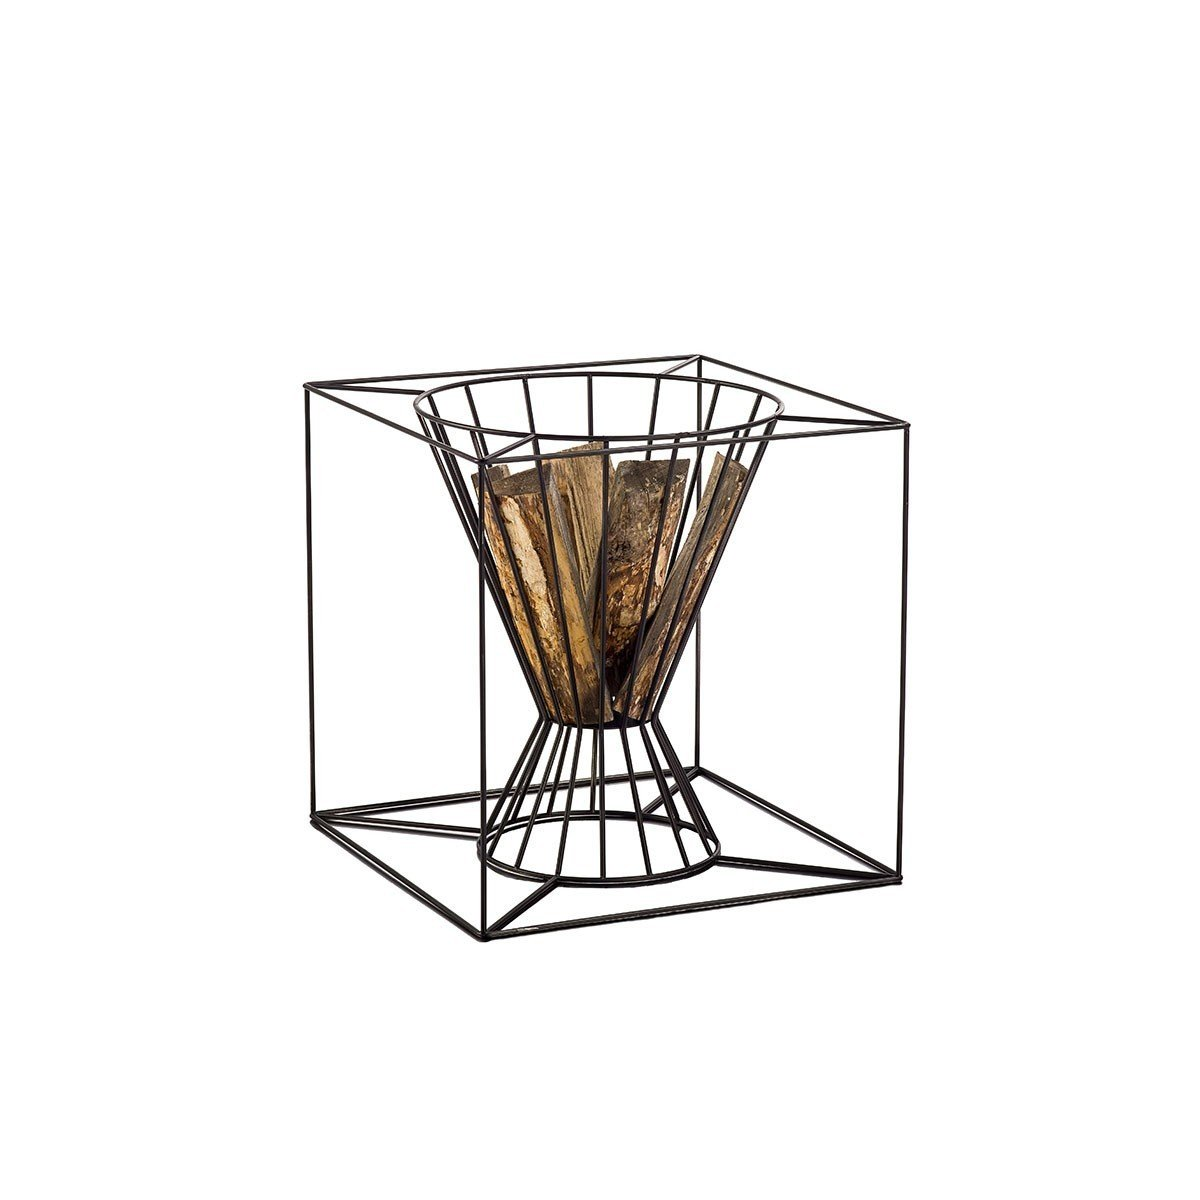 The Boo Fire Basket, $275 from store.dwell.com, can be sued as an outdoor fireplace, but it's also a handsome way to store wood indoors.  Creative Ways to Store Firewood by Diana Budds